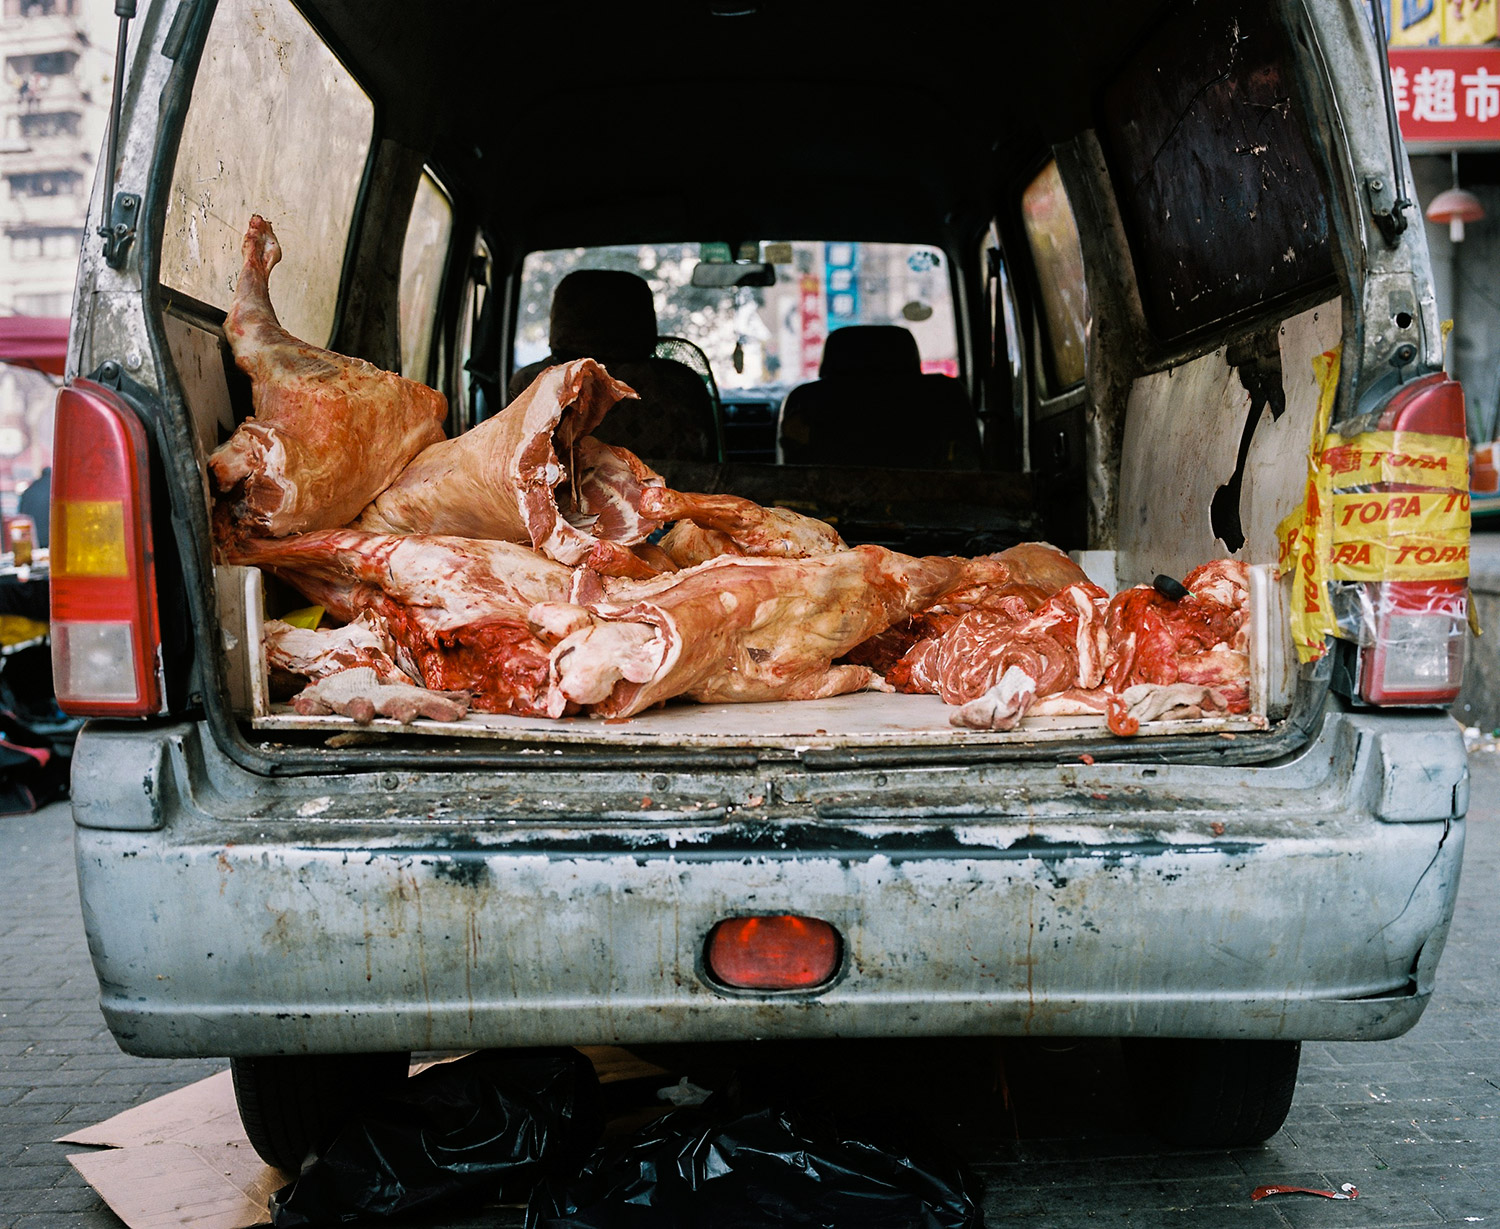 A van loaded with Lamb meat for the friday market near the Shanghai Mosque